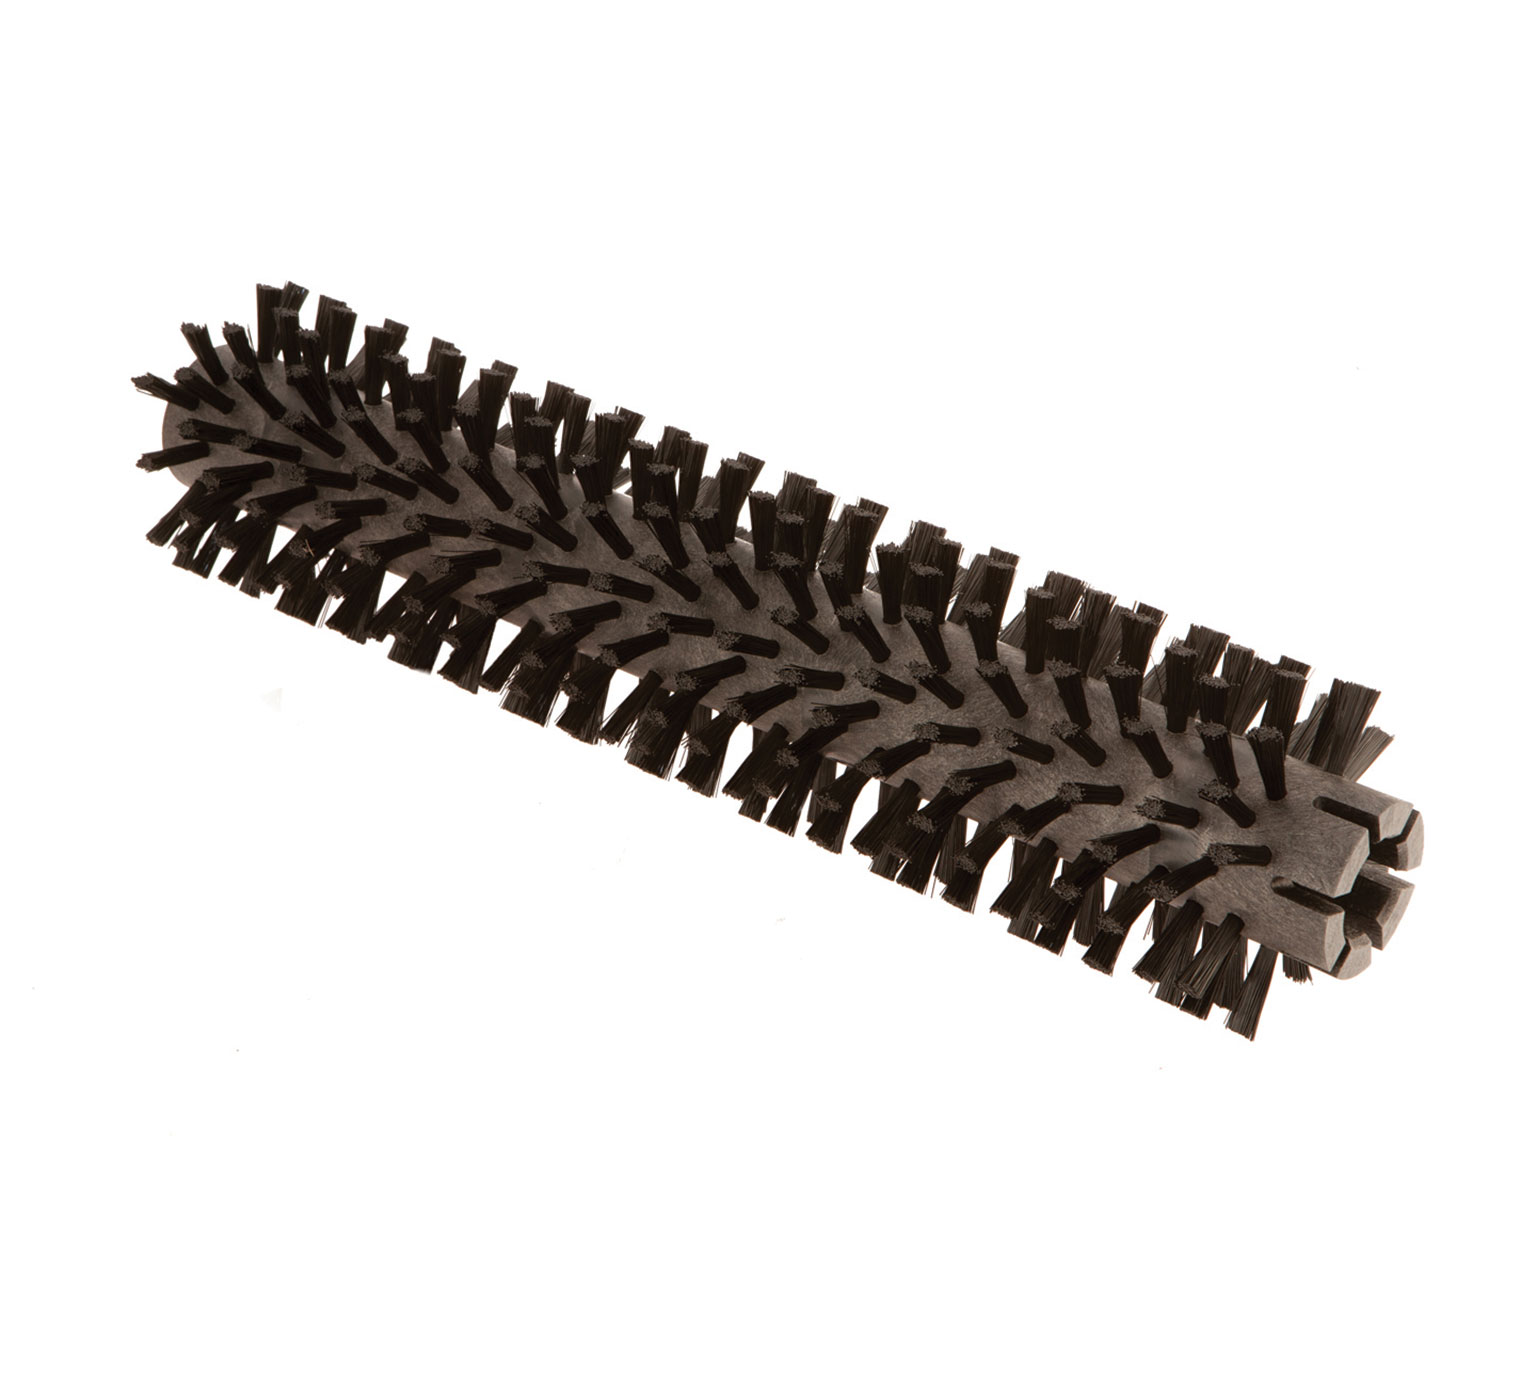 1028954 Nylon Scrub Brush – 15 x 3.5 in alt 1